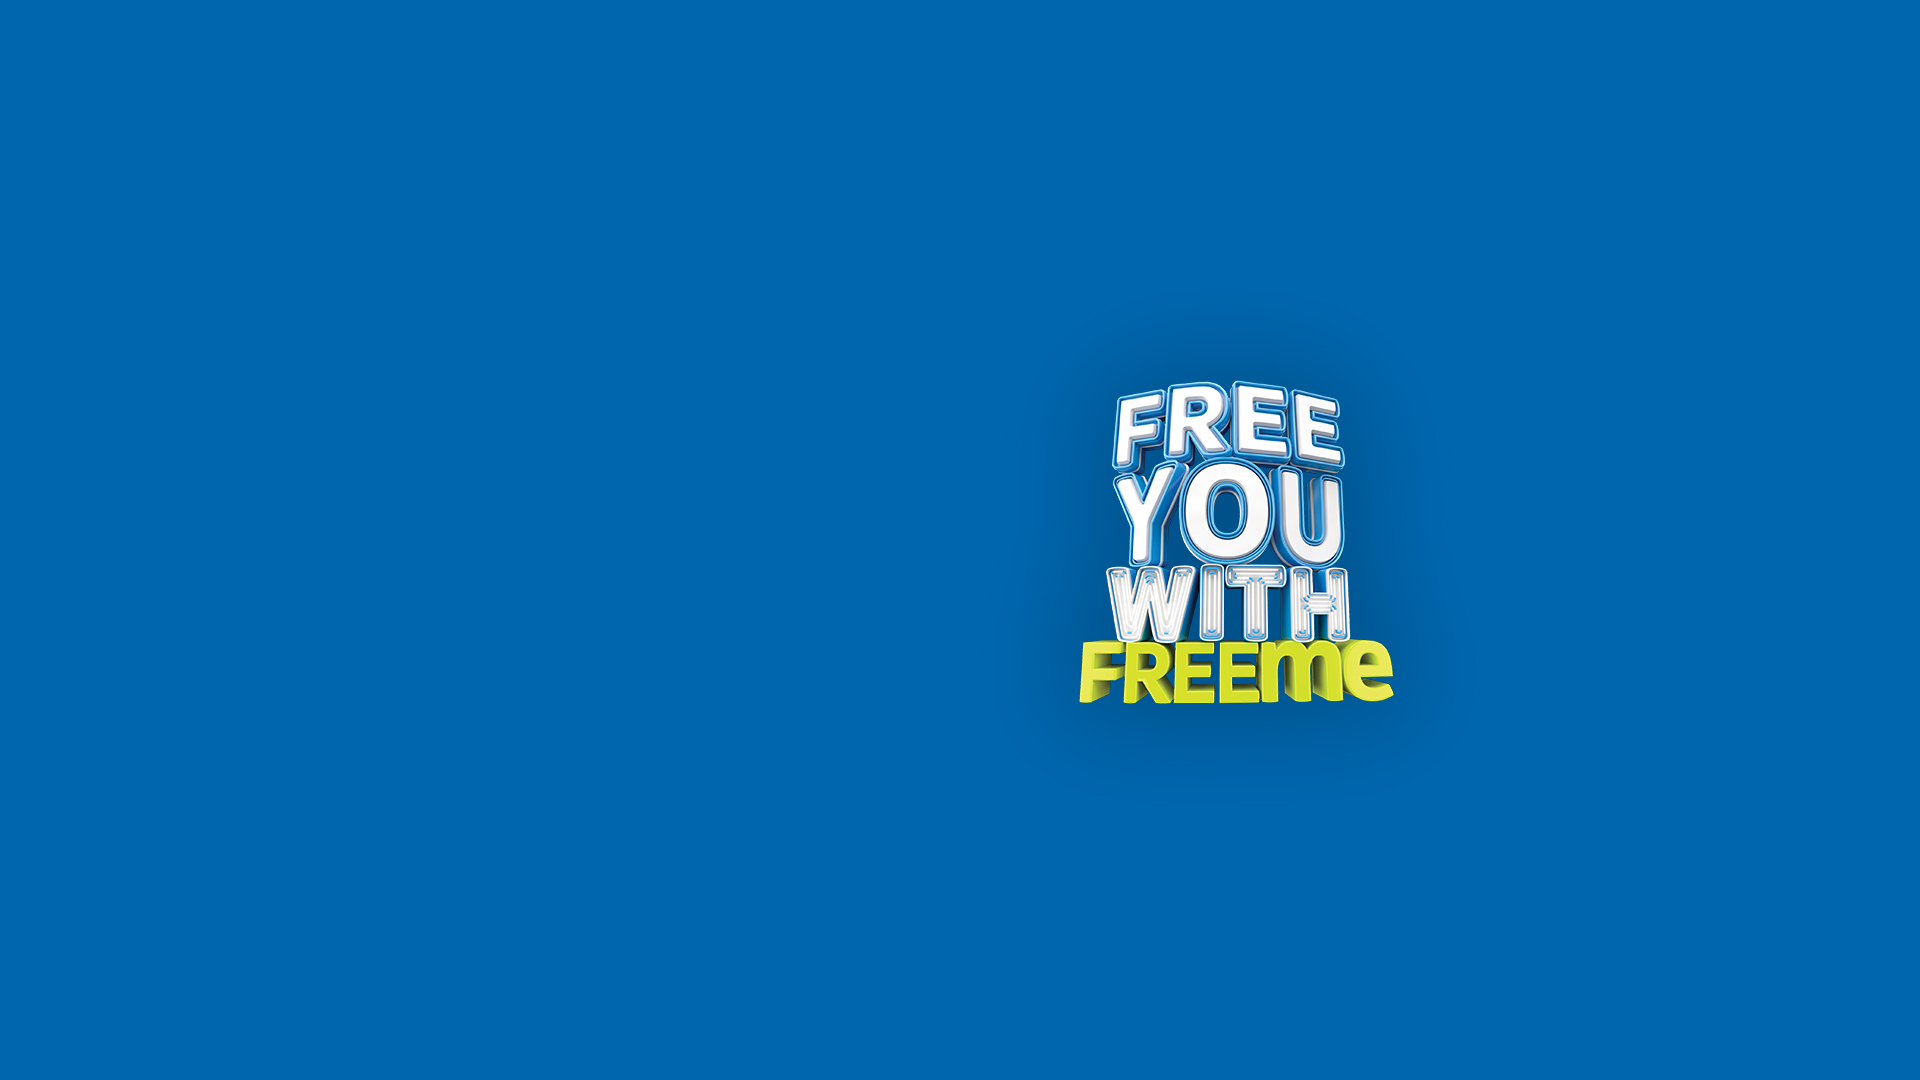 FreeMe is about choices. All the data, all the options.